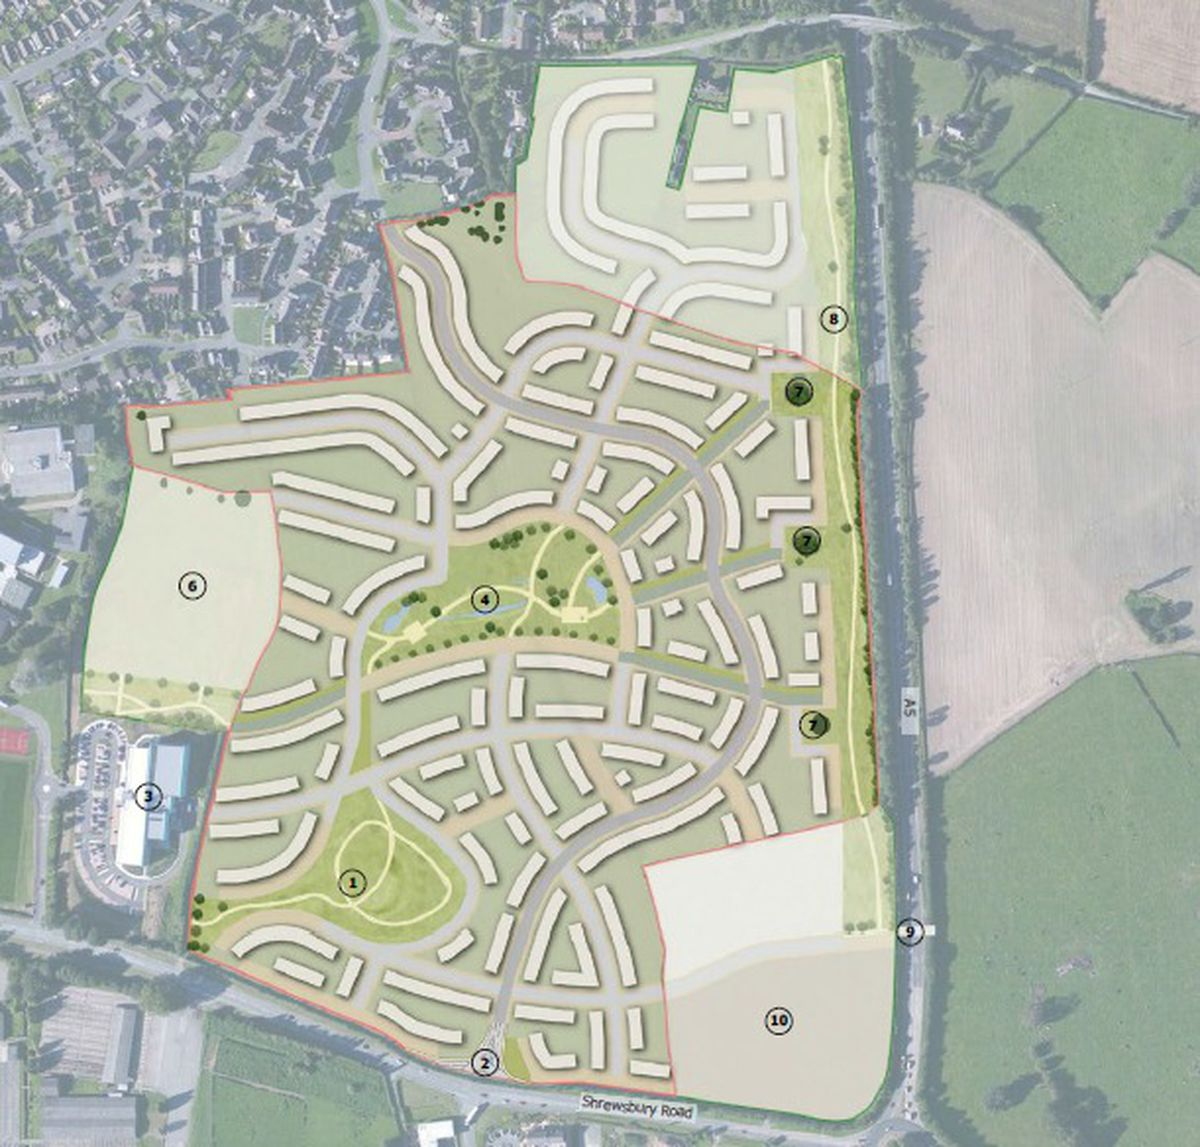 The planned housing development. Image: WYG